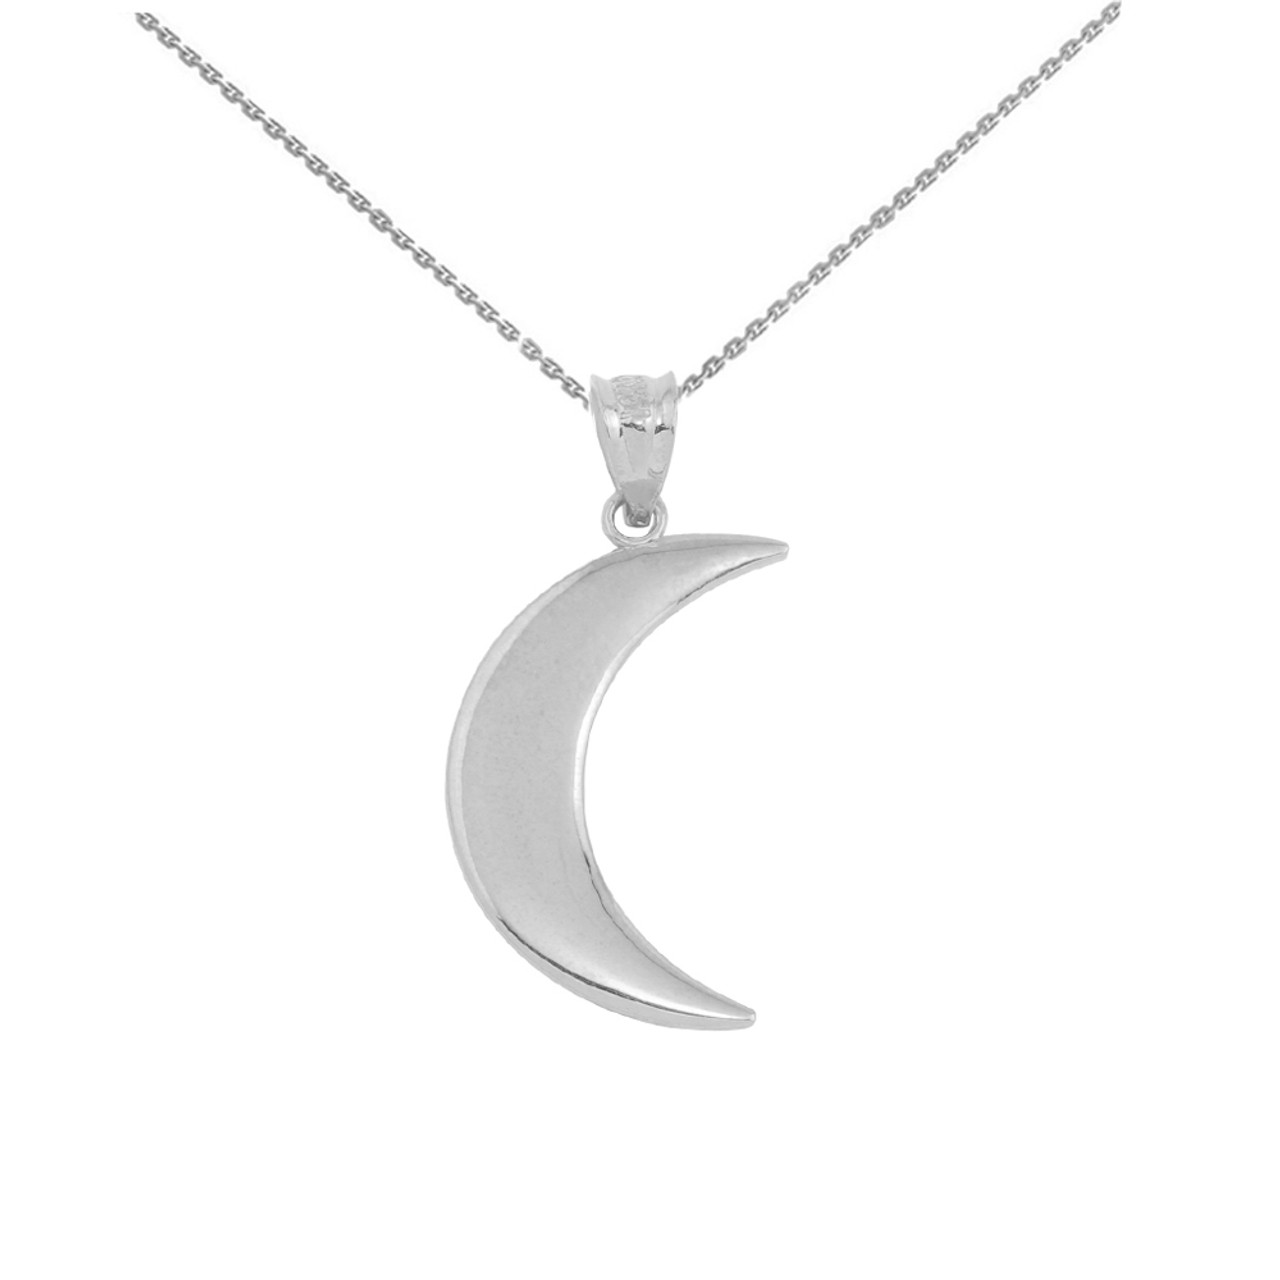 w silver chain crescent moon pendant necklace gold sterling